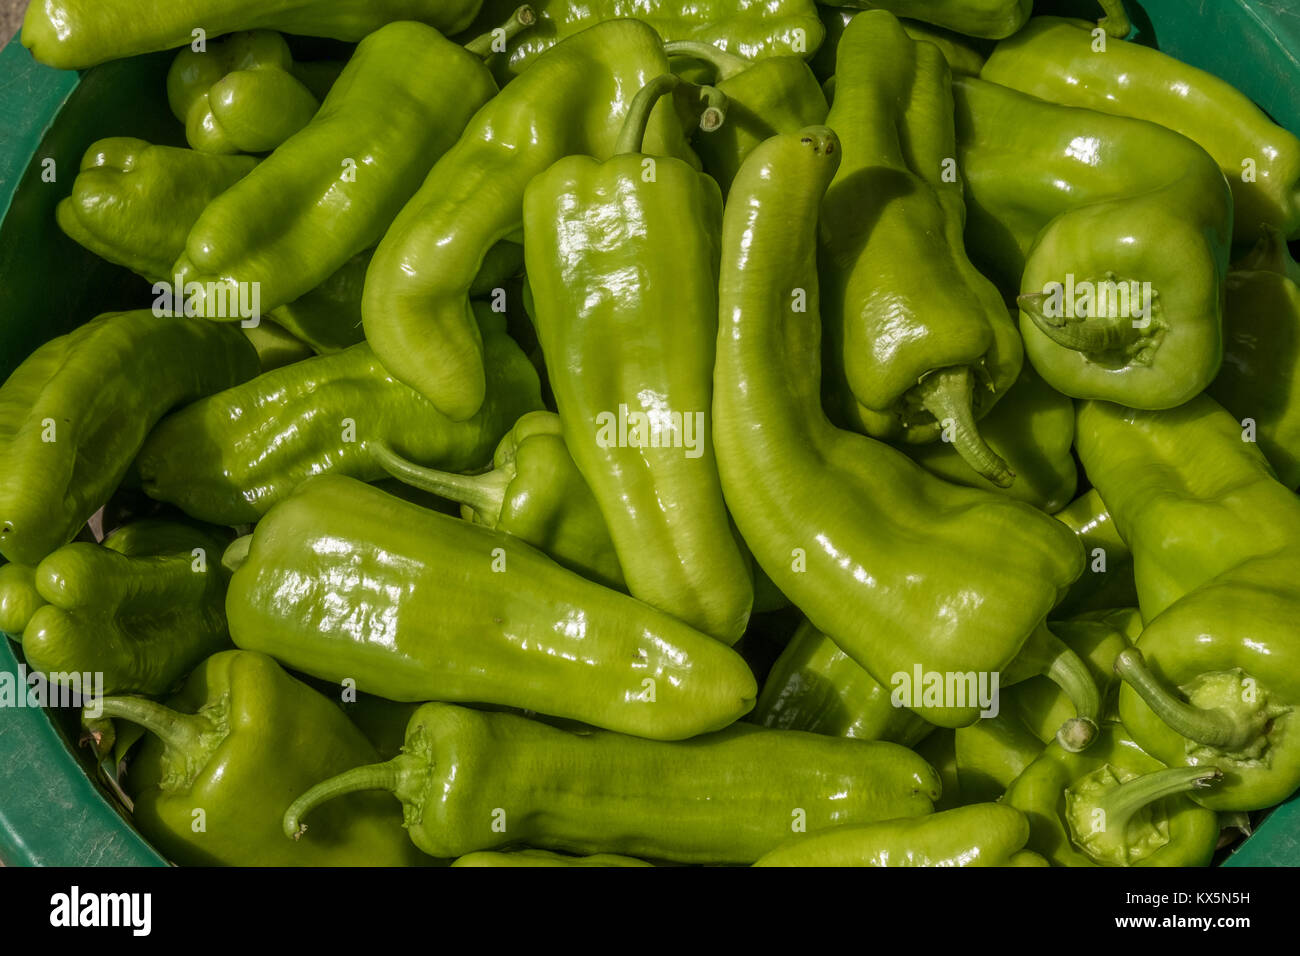 Vegetables boxed up and ready to ship to a local food bank - Stock Image